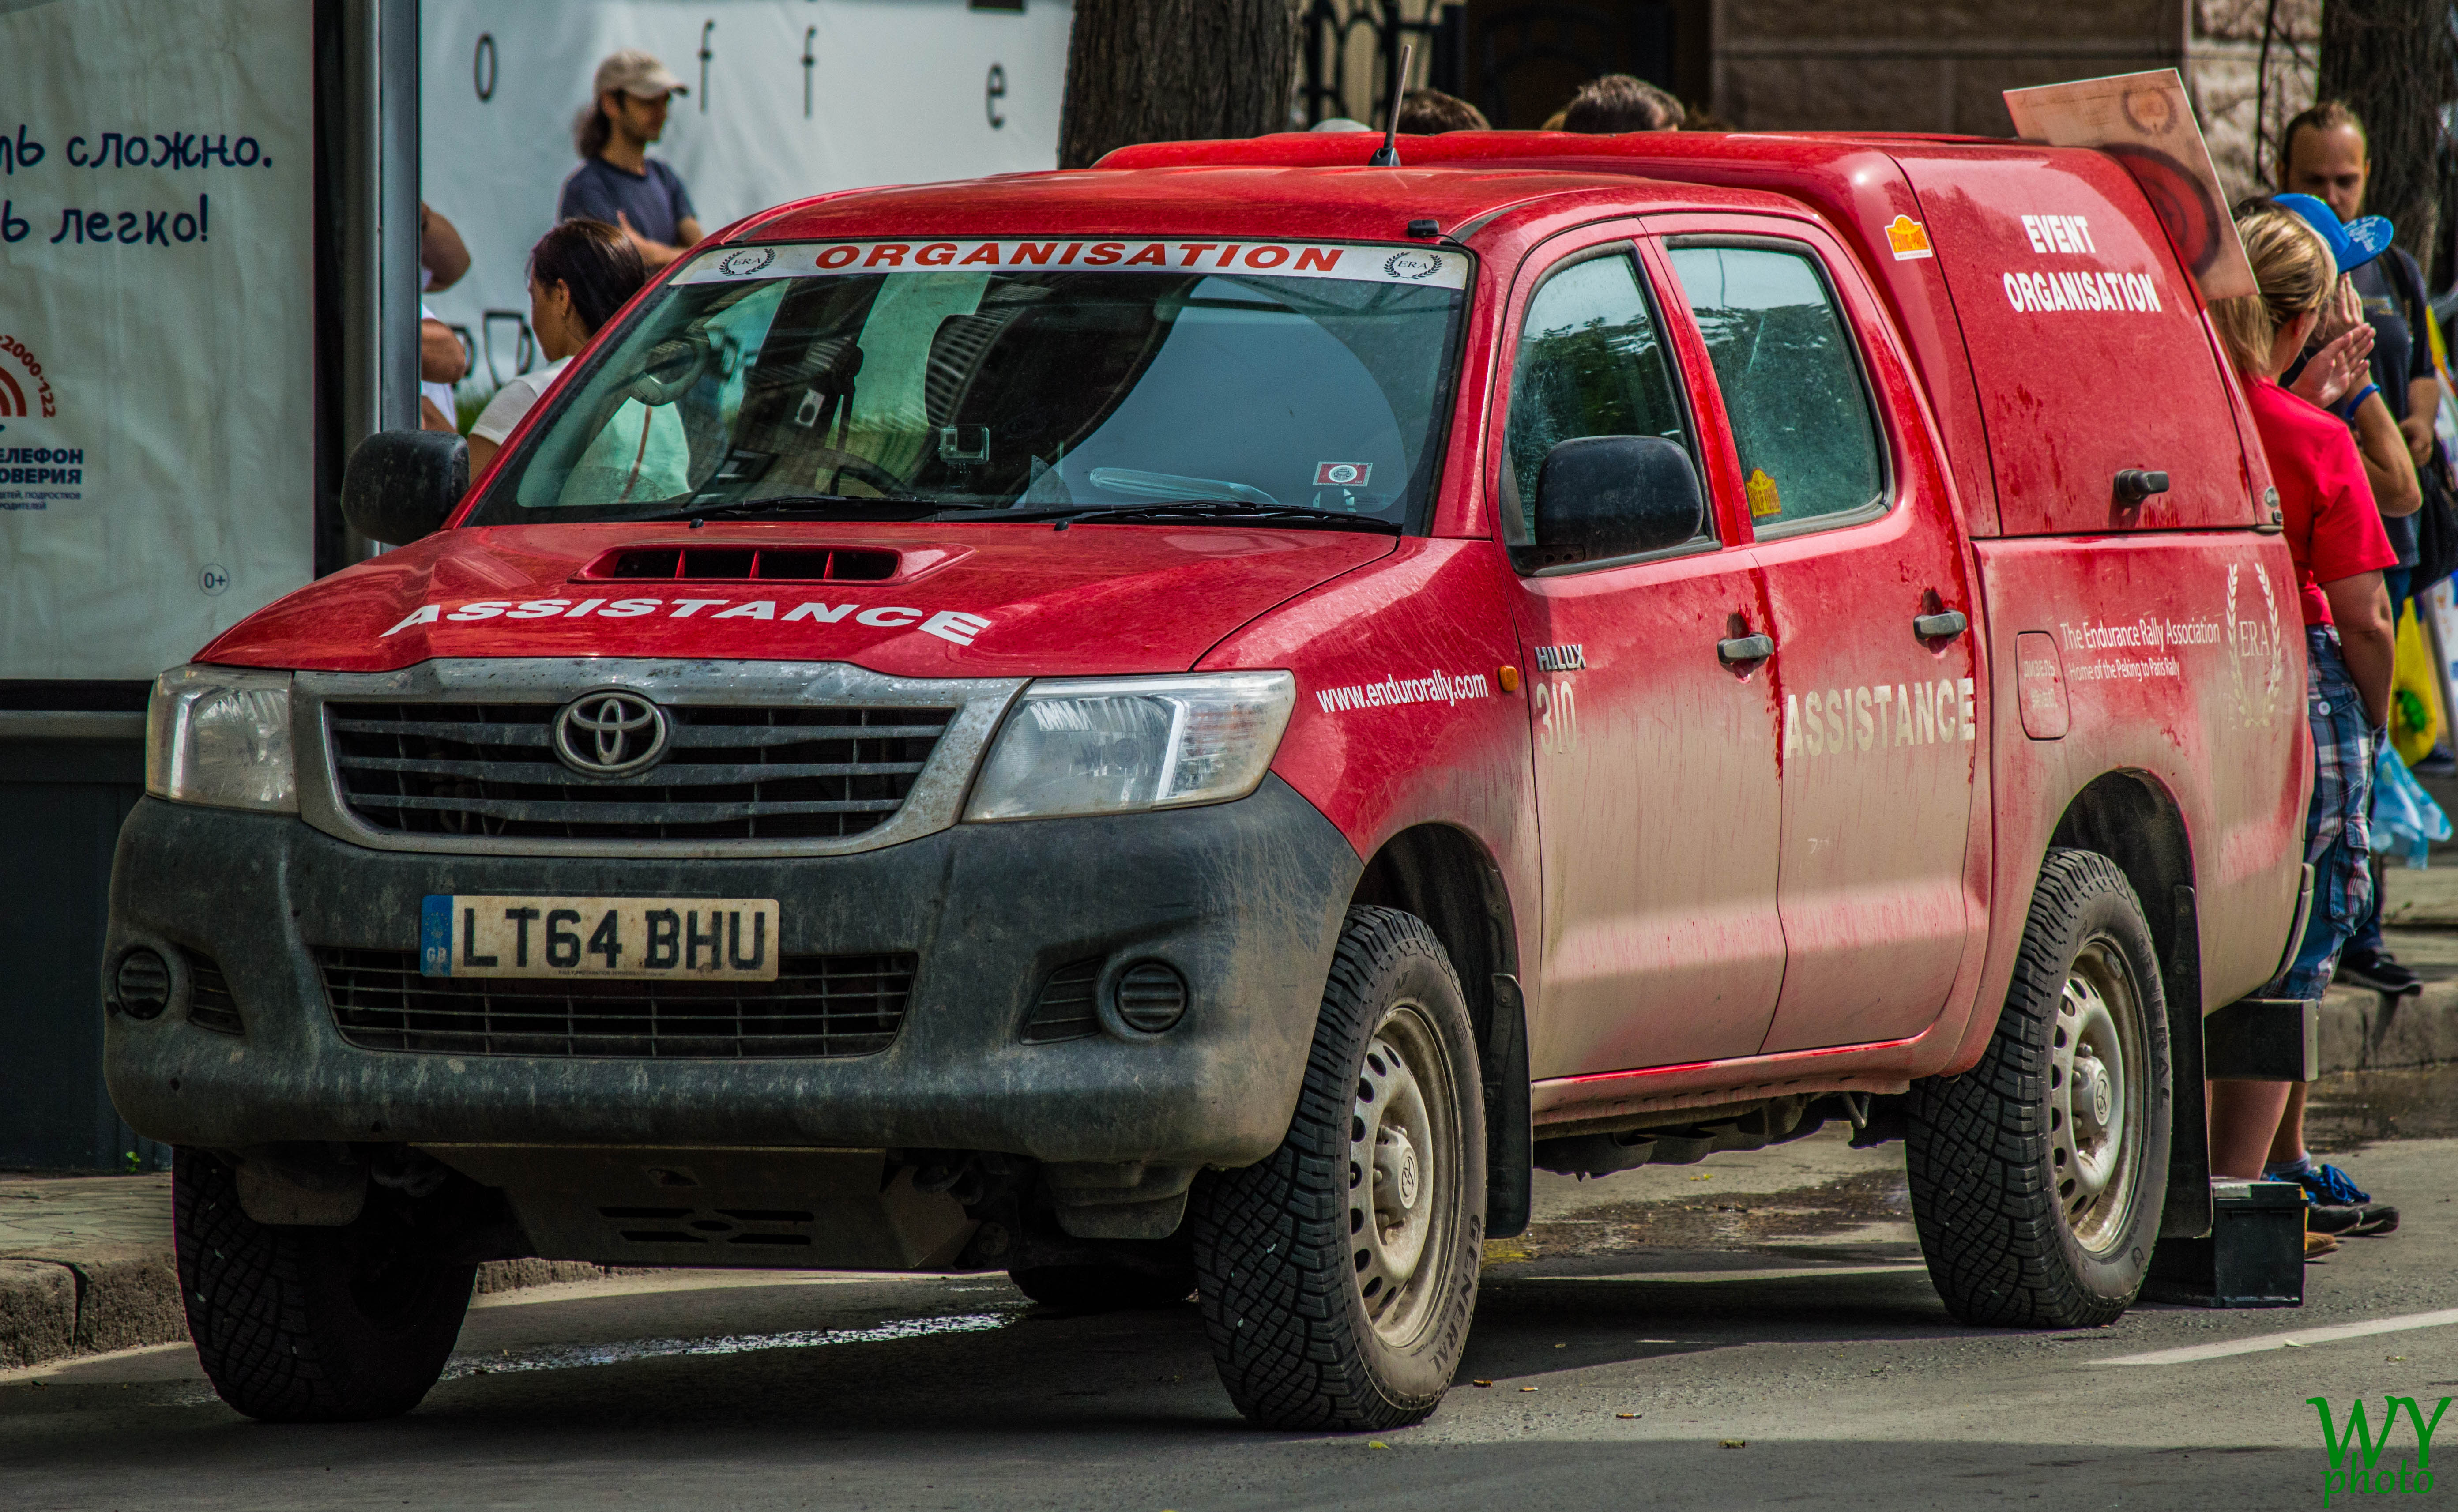 Toyota hilux assistance vehicle photo